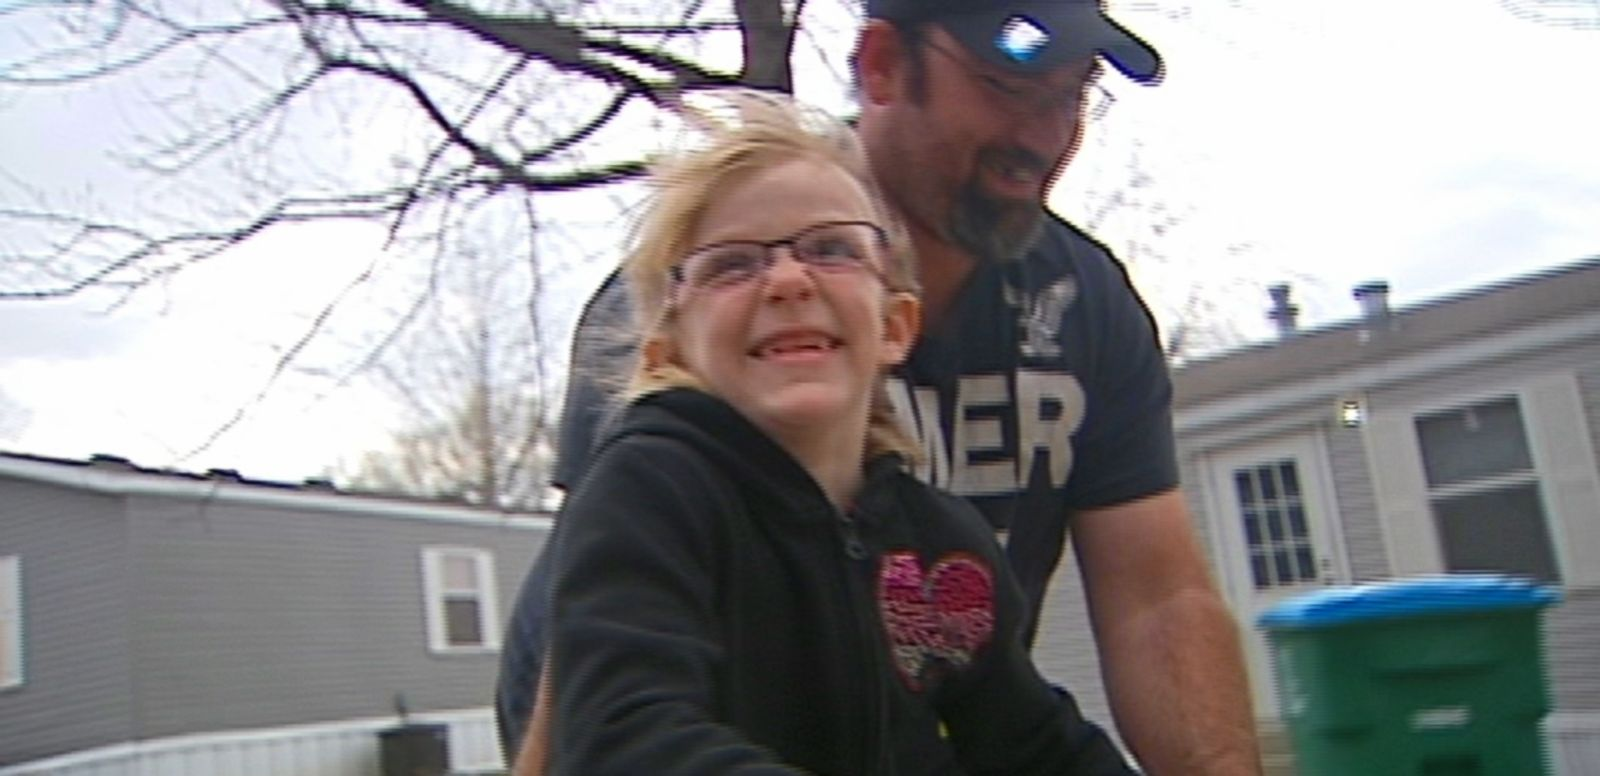 VIDEO: Amanda Moss was shocked by the note given to her 54-pound daughter who stands 3 feet 10 inches tall.